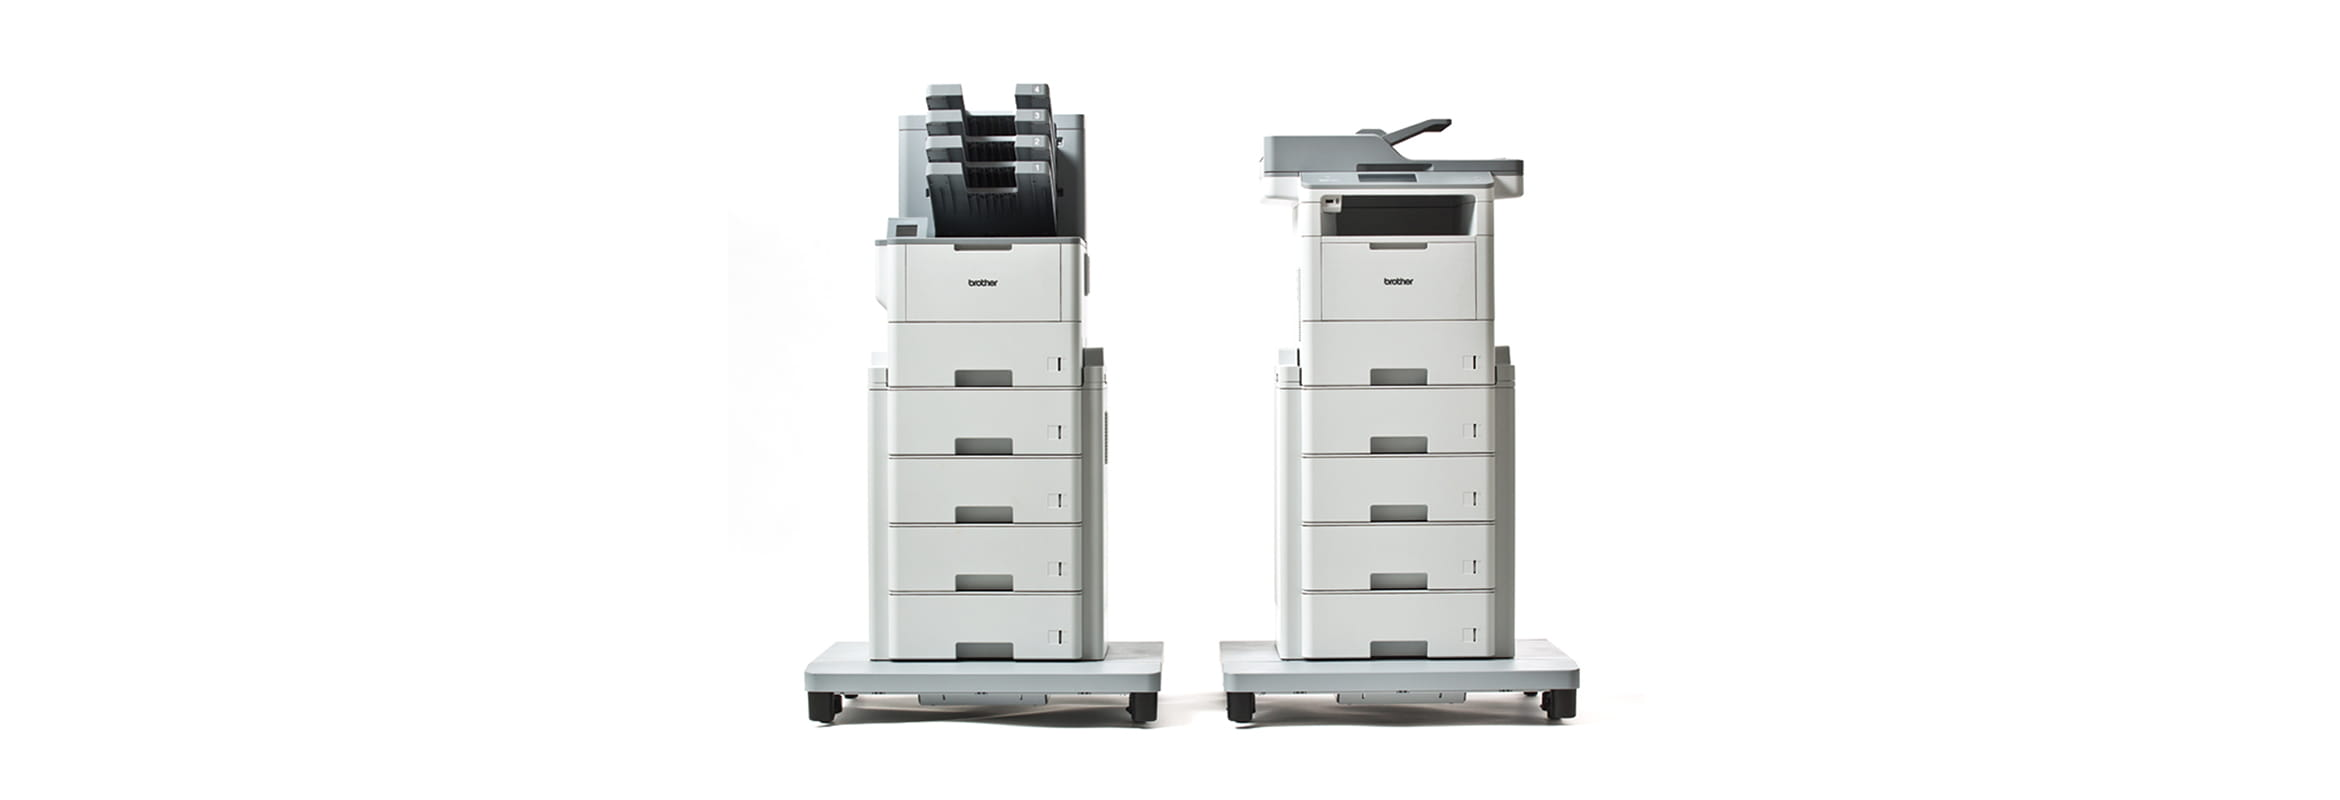 L6000-workgroup-range-printers-Brother